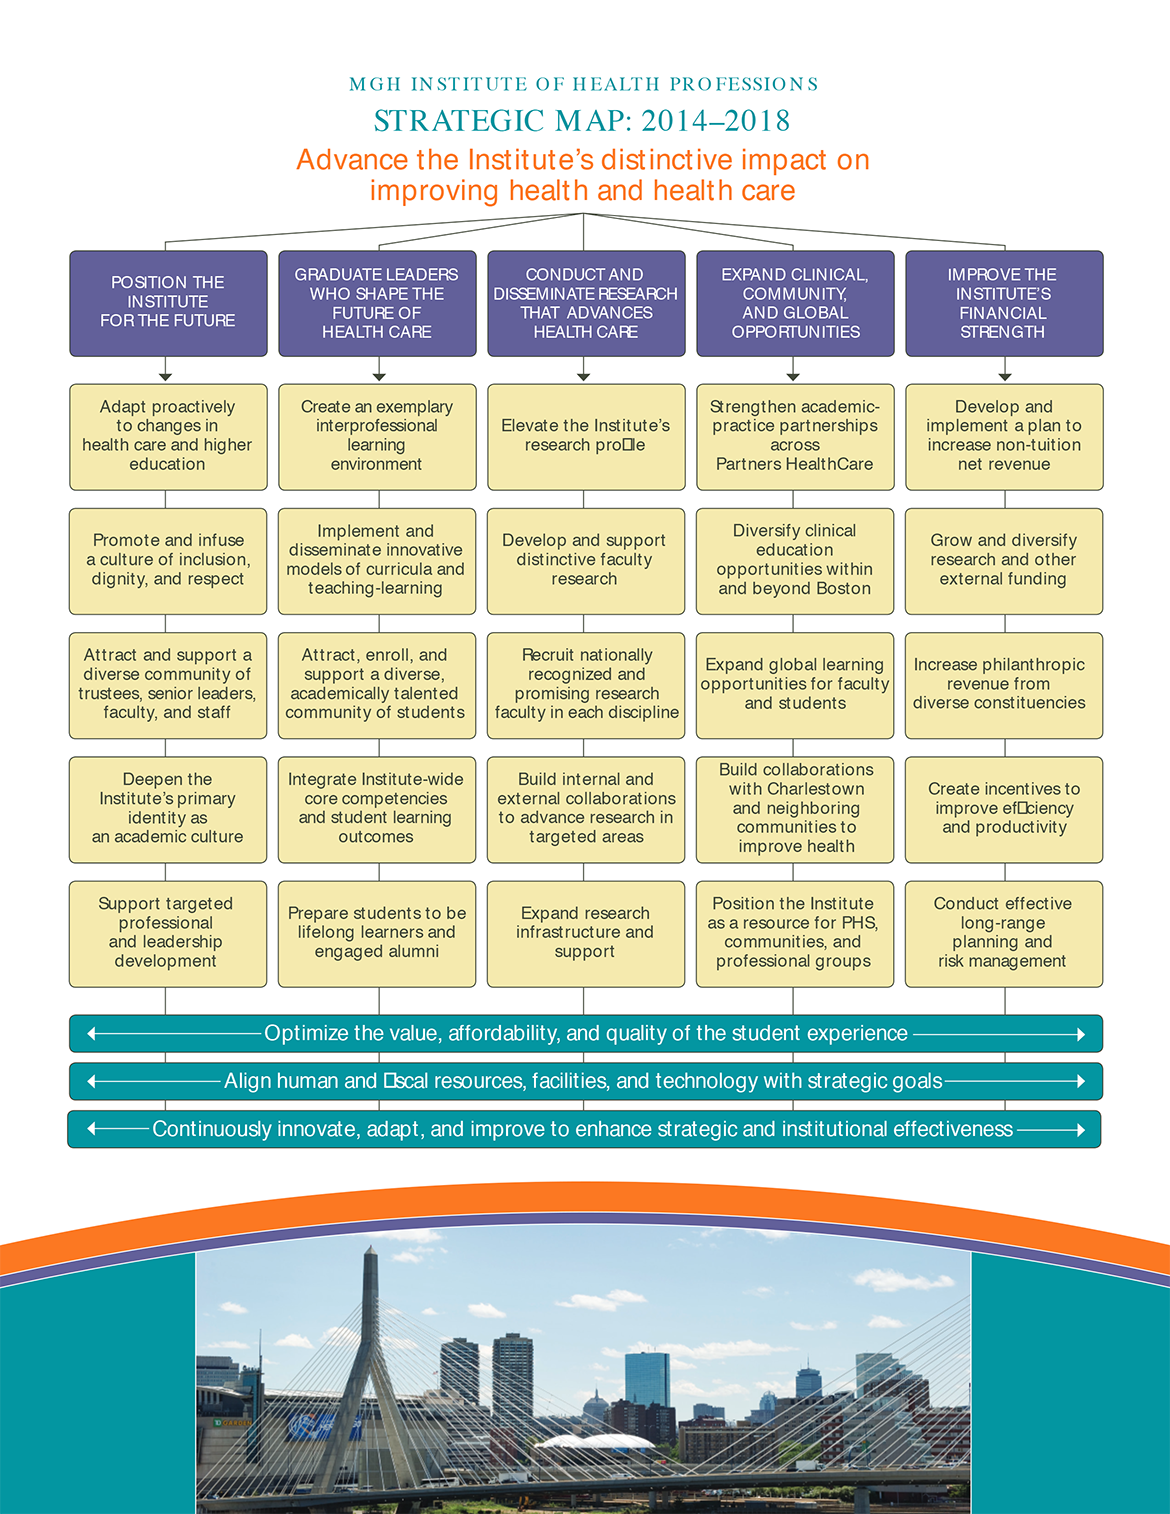 2014-2018 Strategic Map for MGH Institute of Health Professions